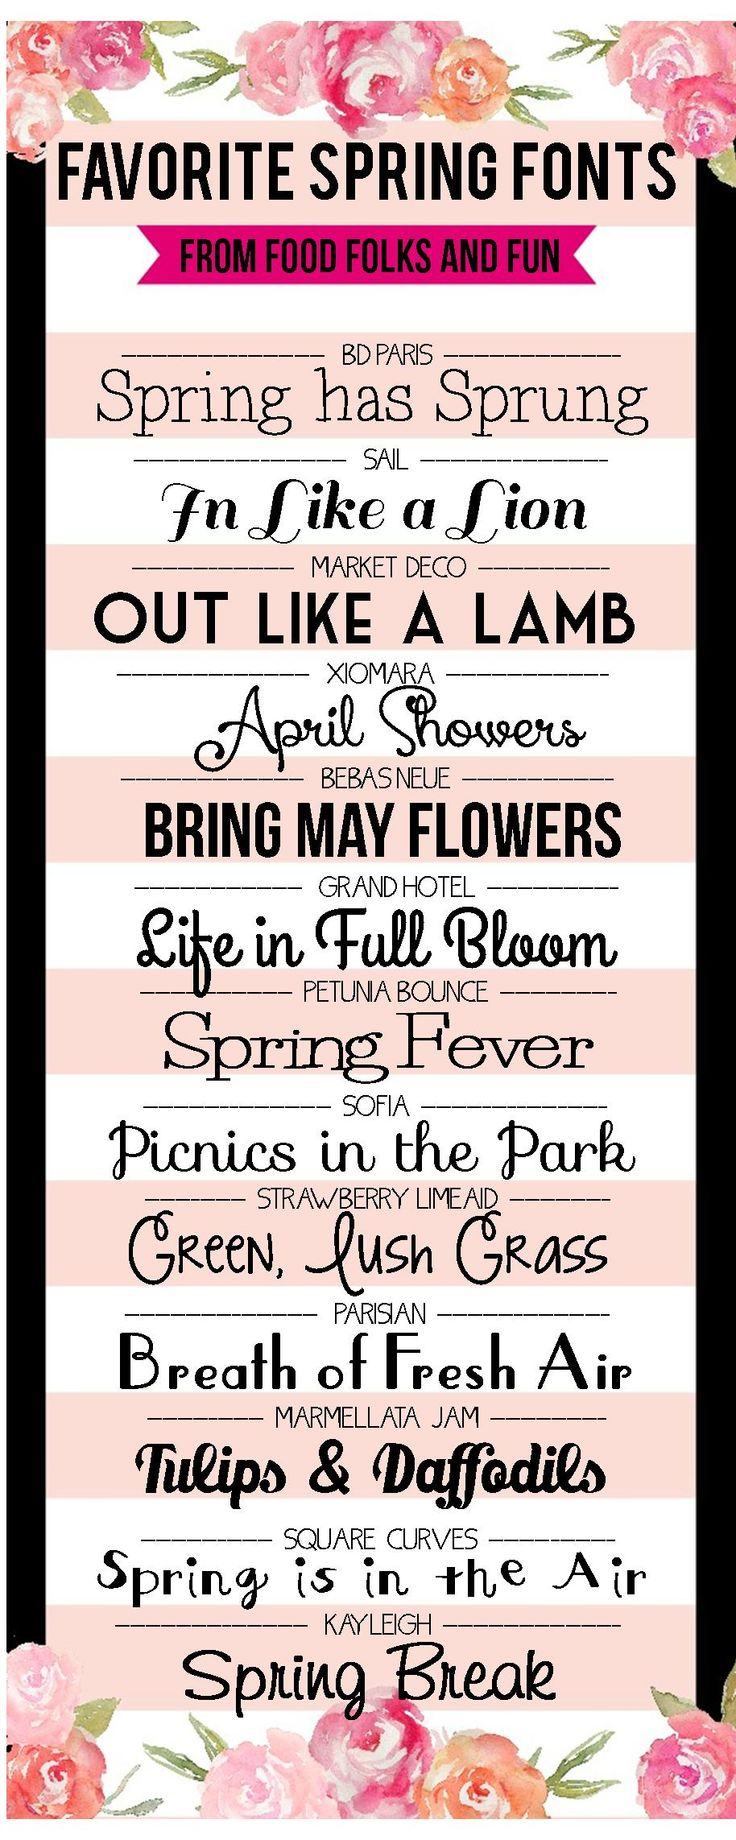 Favorite FREE Spring Fonts - Food, Folks, and Fun